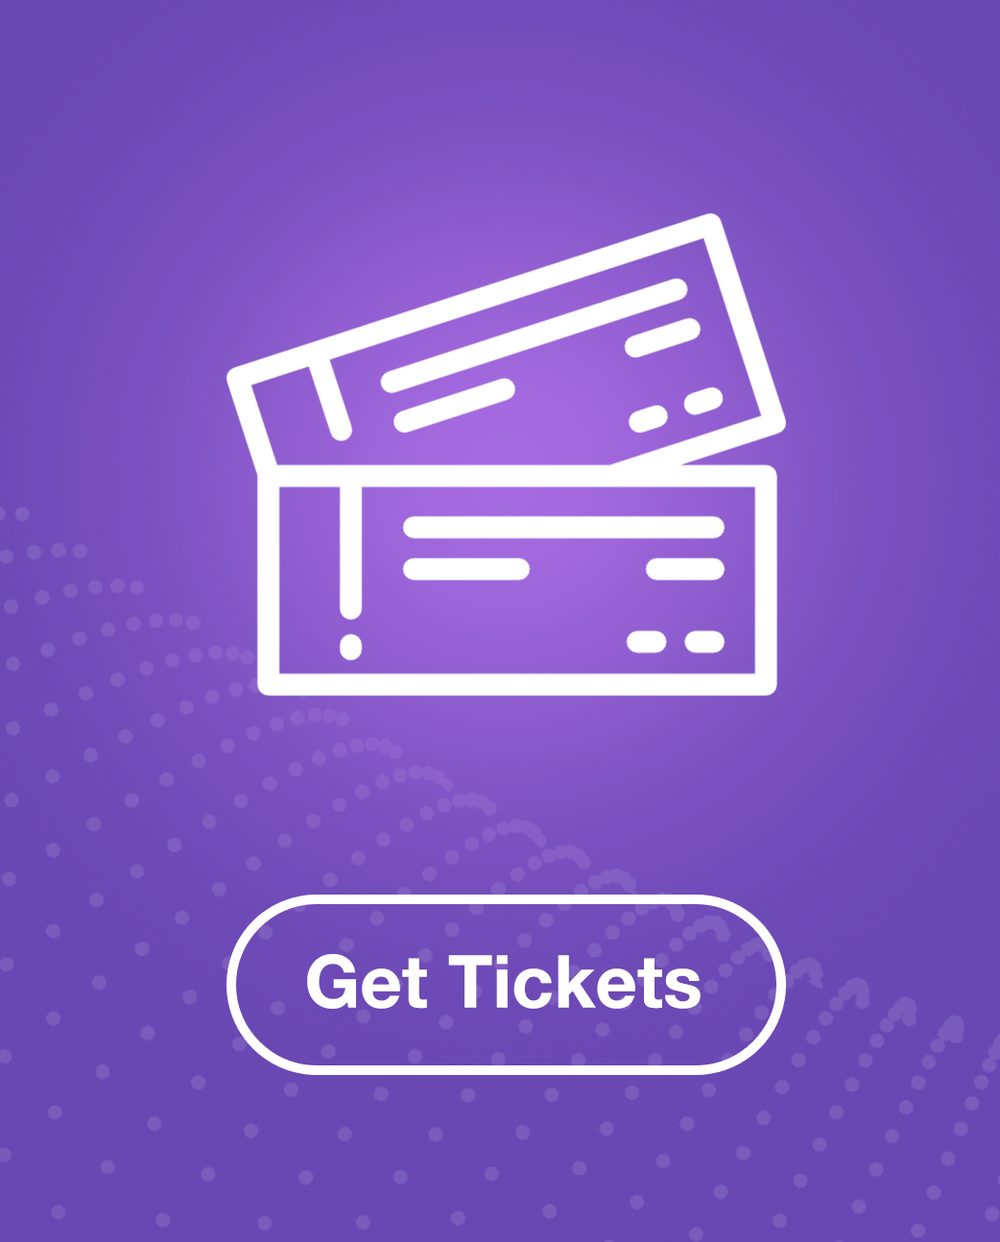 get-tickets-patch.png